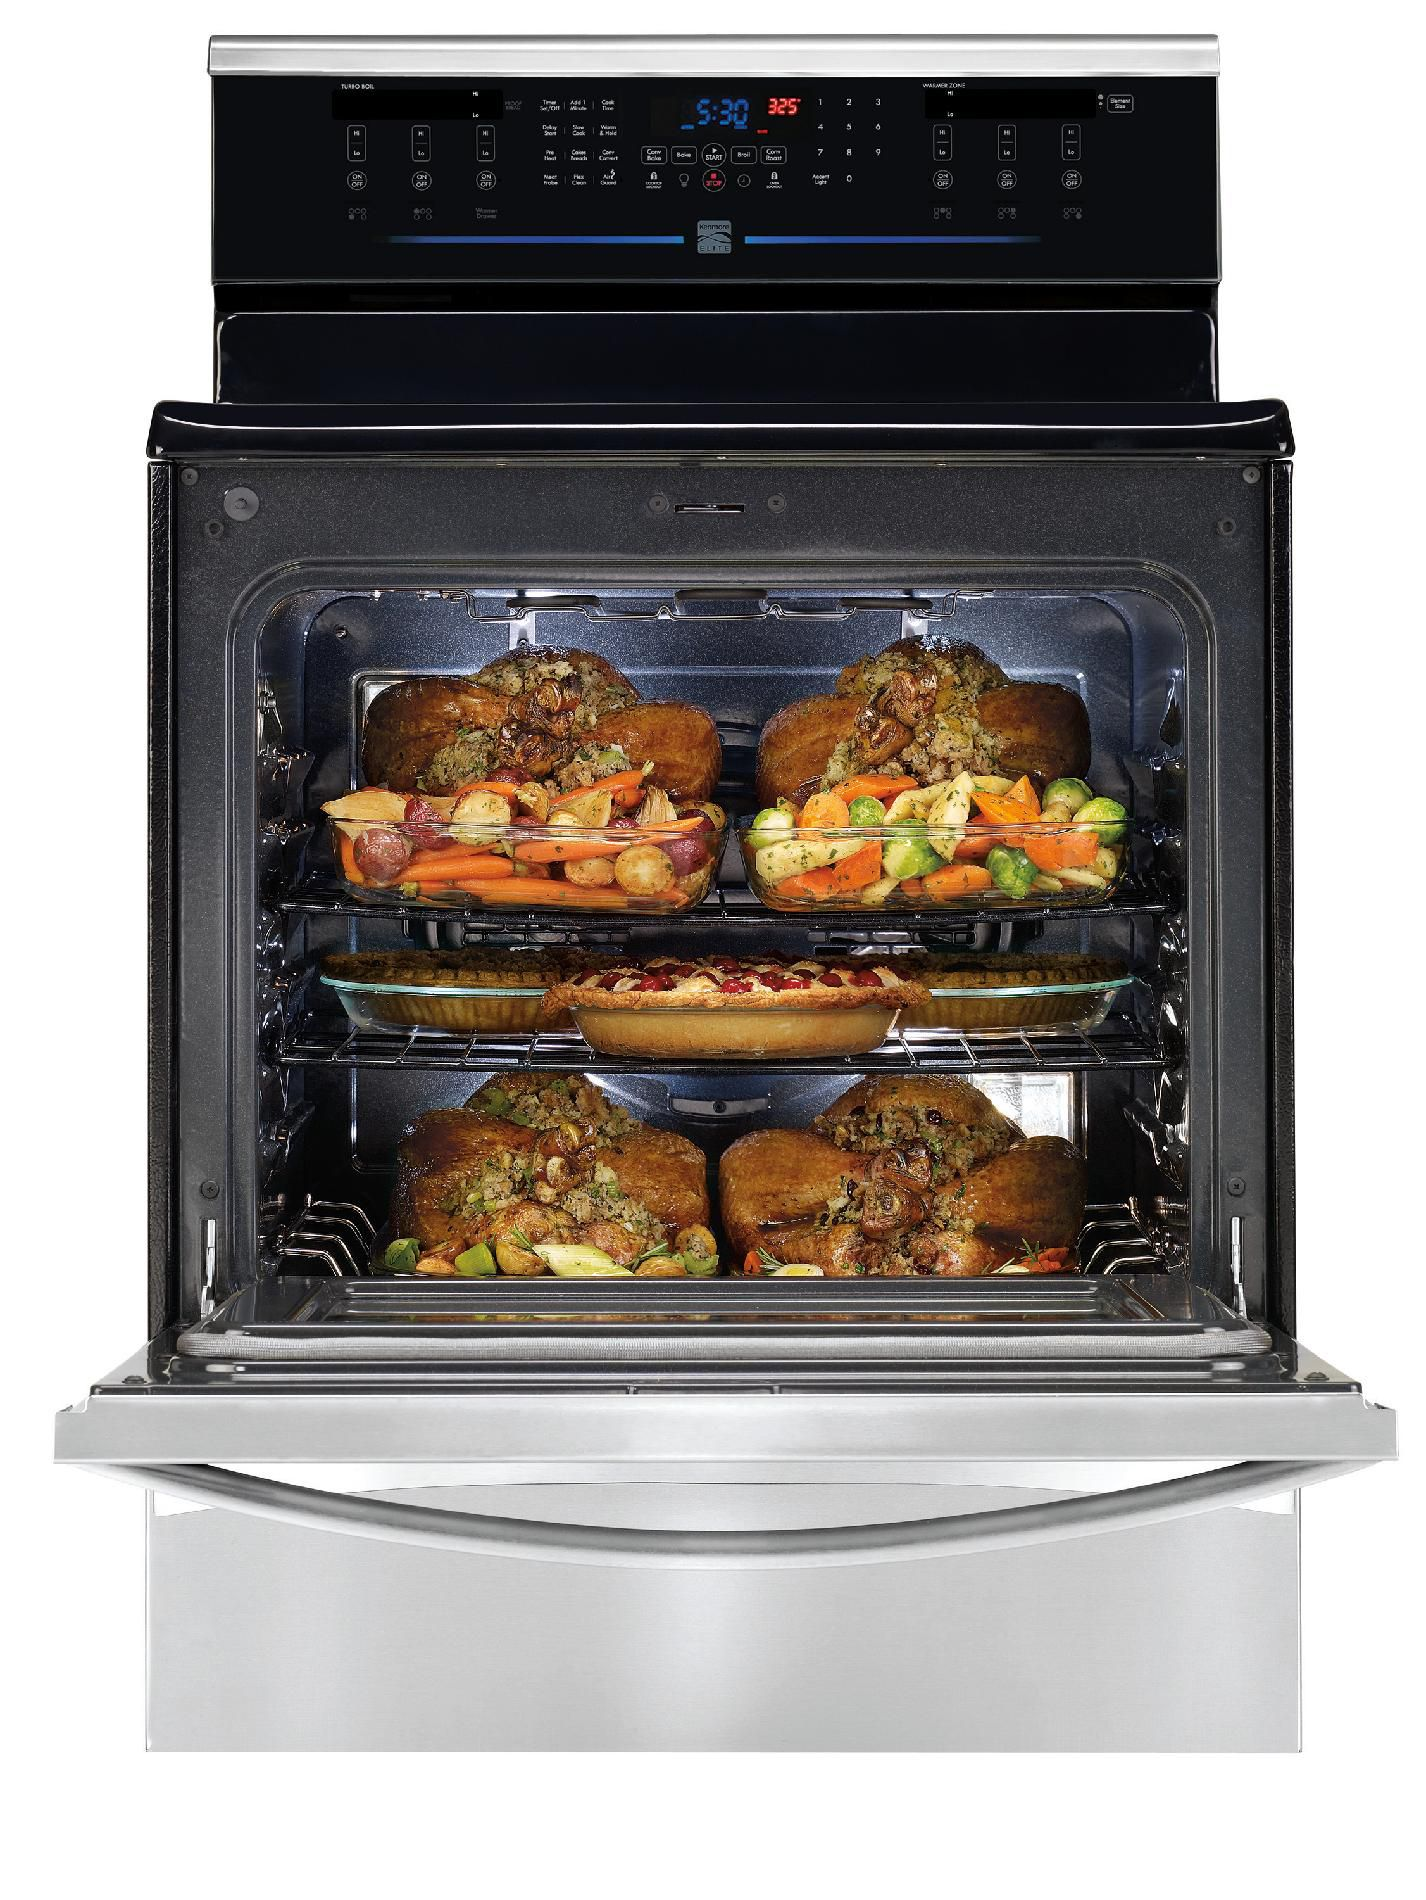 Kenmore Elite 6.1 cu. ft. Electric Range